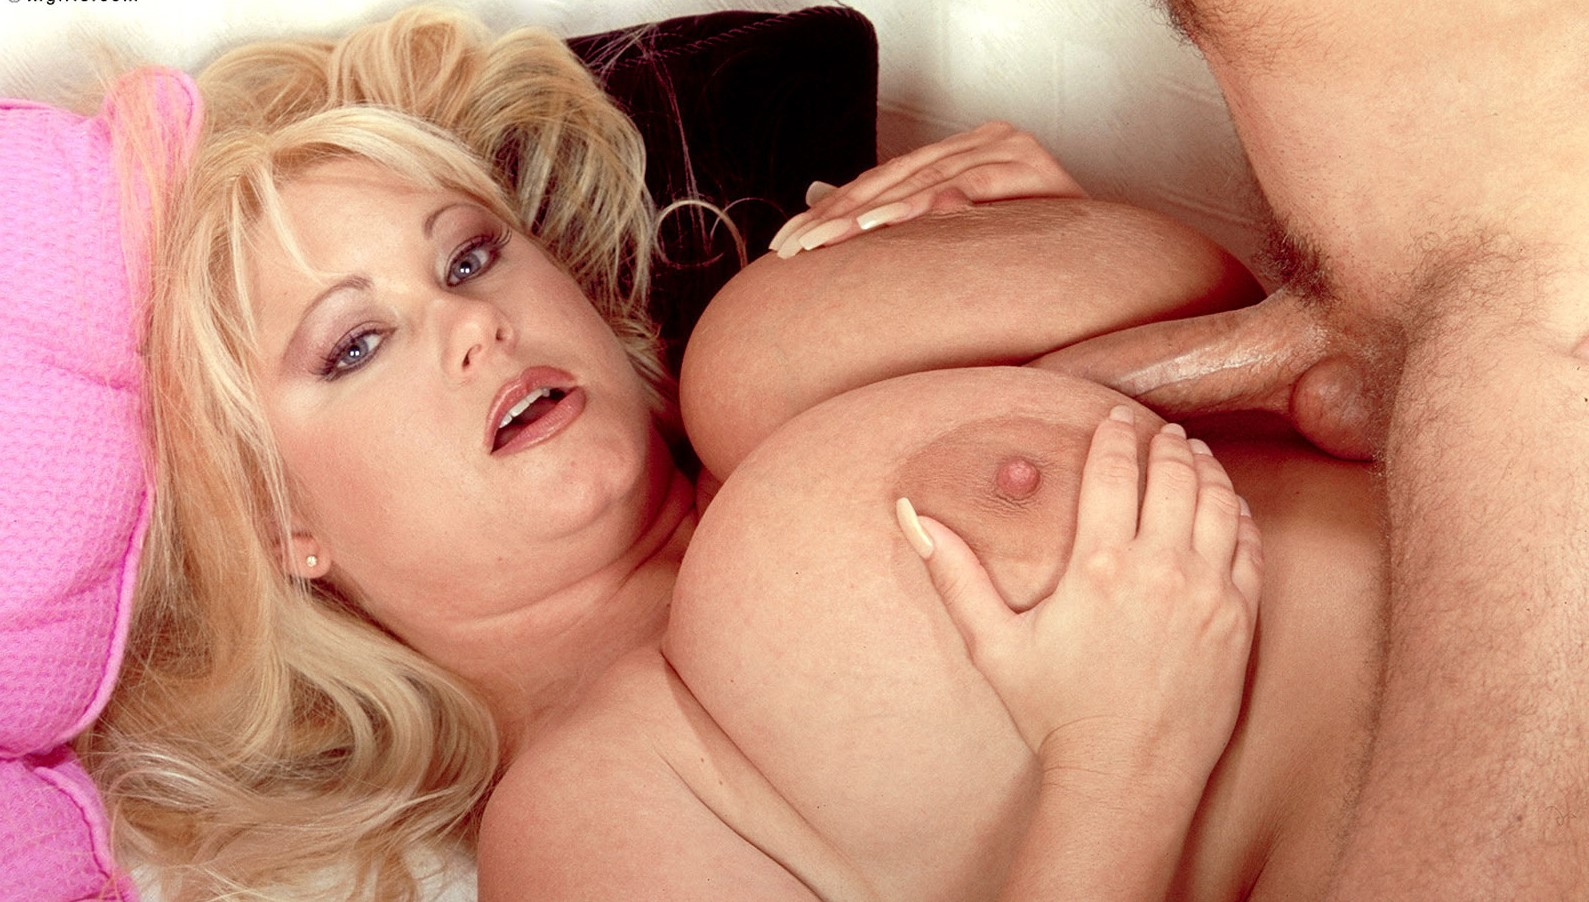 [XlGirls.com] Samantha Anderson (Xl Xtra 1) Samantha Anderson - Xl Xtra 1 [2004, Big Tits, Huge Tits, Straight, Voluptuous, BBW, Milf, Cum on Tits]